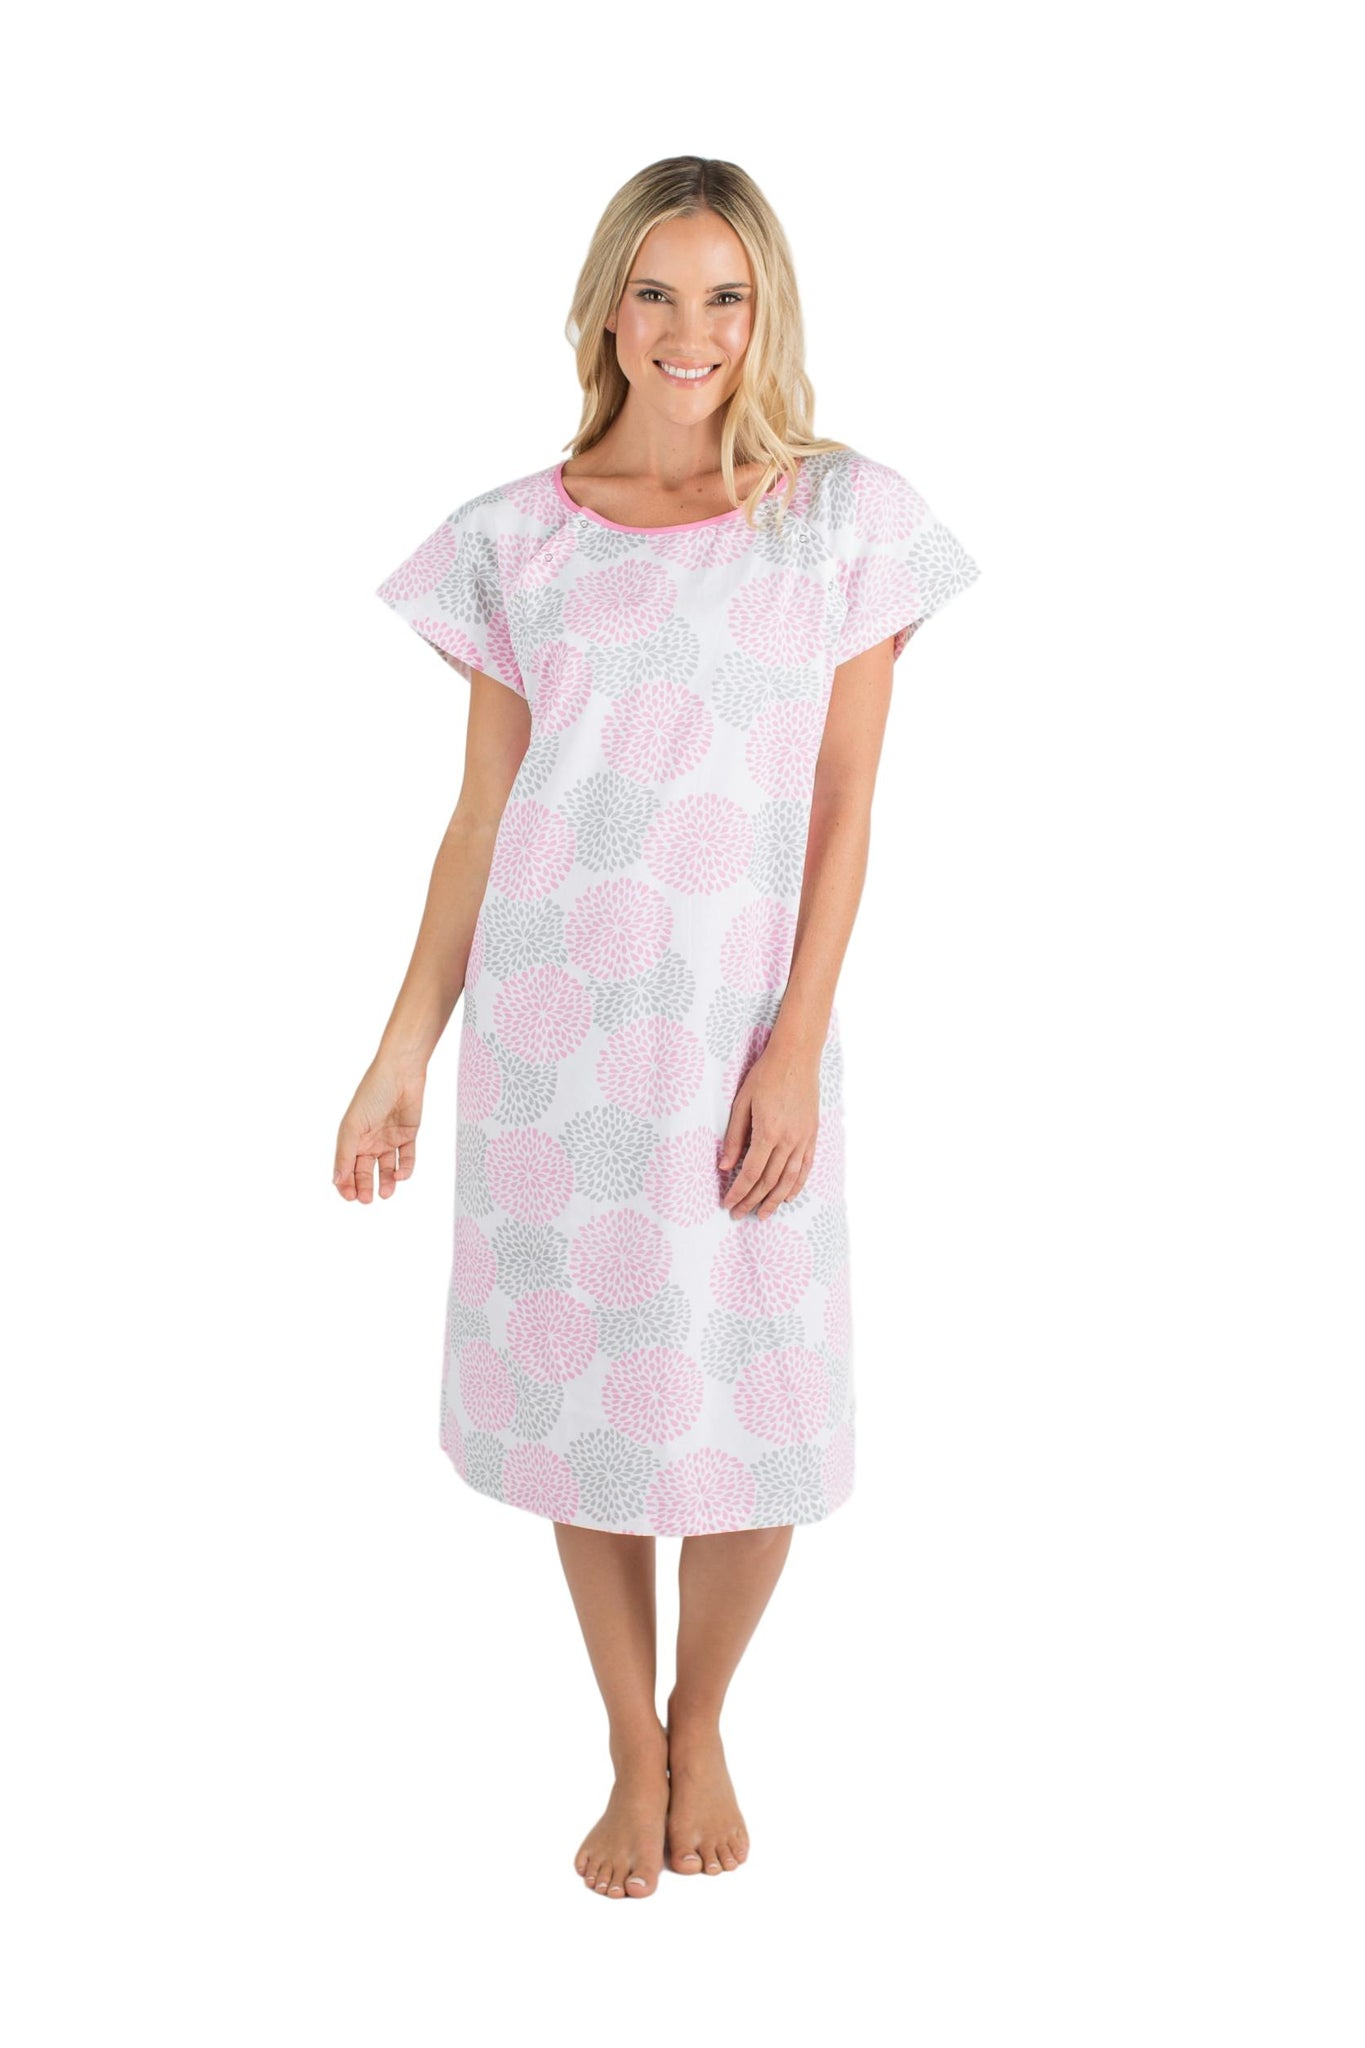 Lilly Patient Hospital Gown Gownies